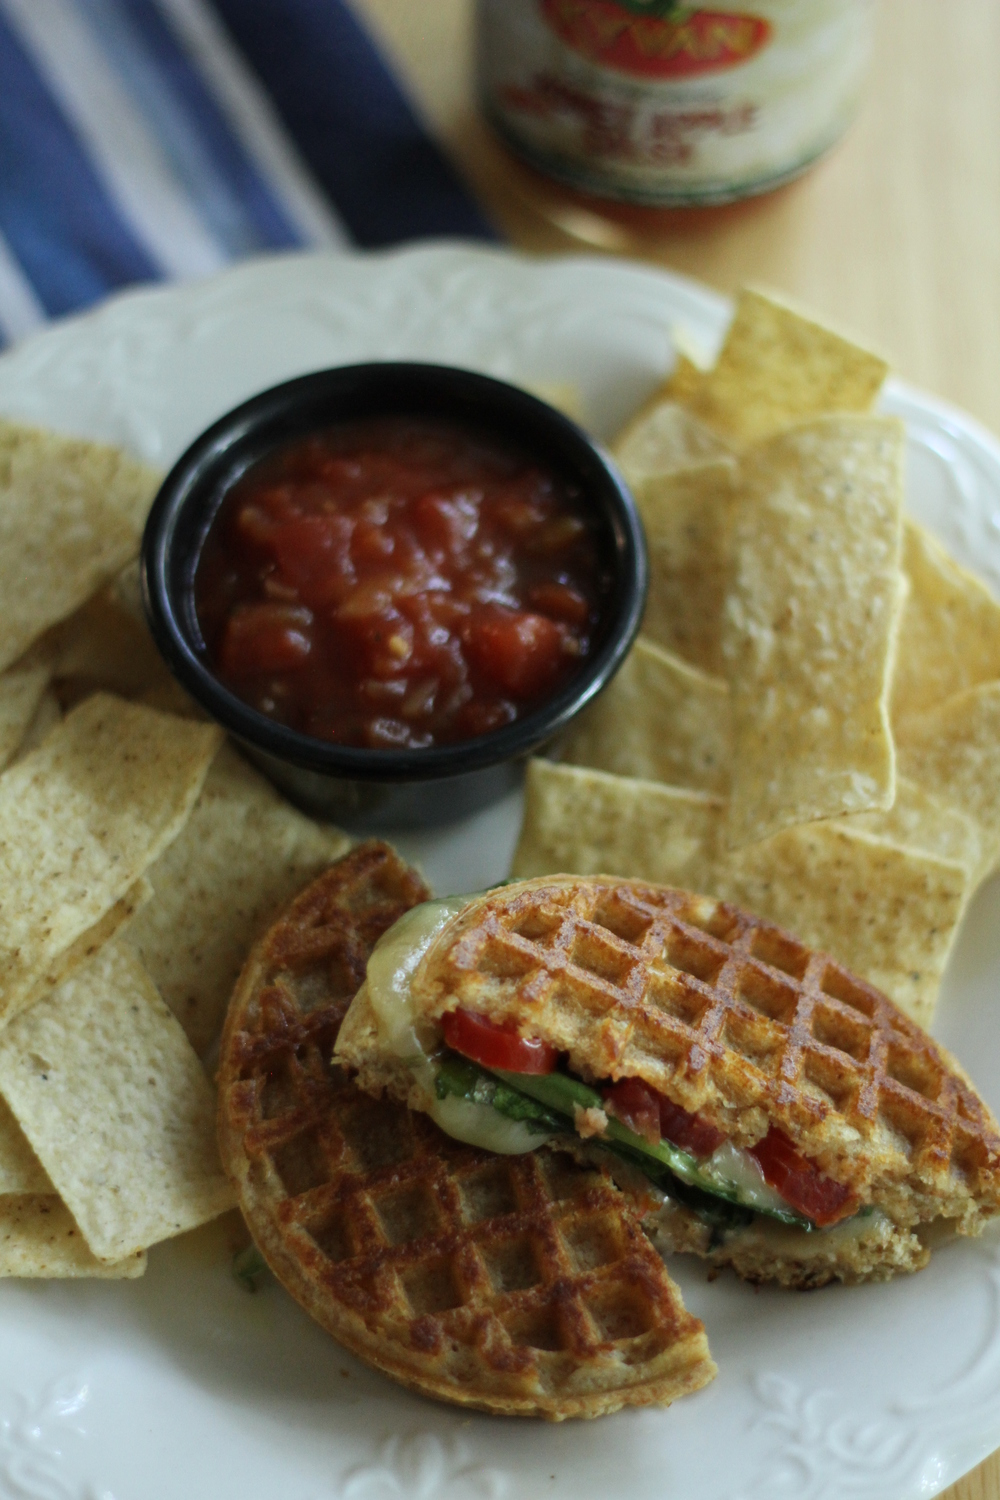 Waffle Grilled Cheese served with KYVAN's Honey Apple Salsa and tortilla chips.